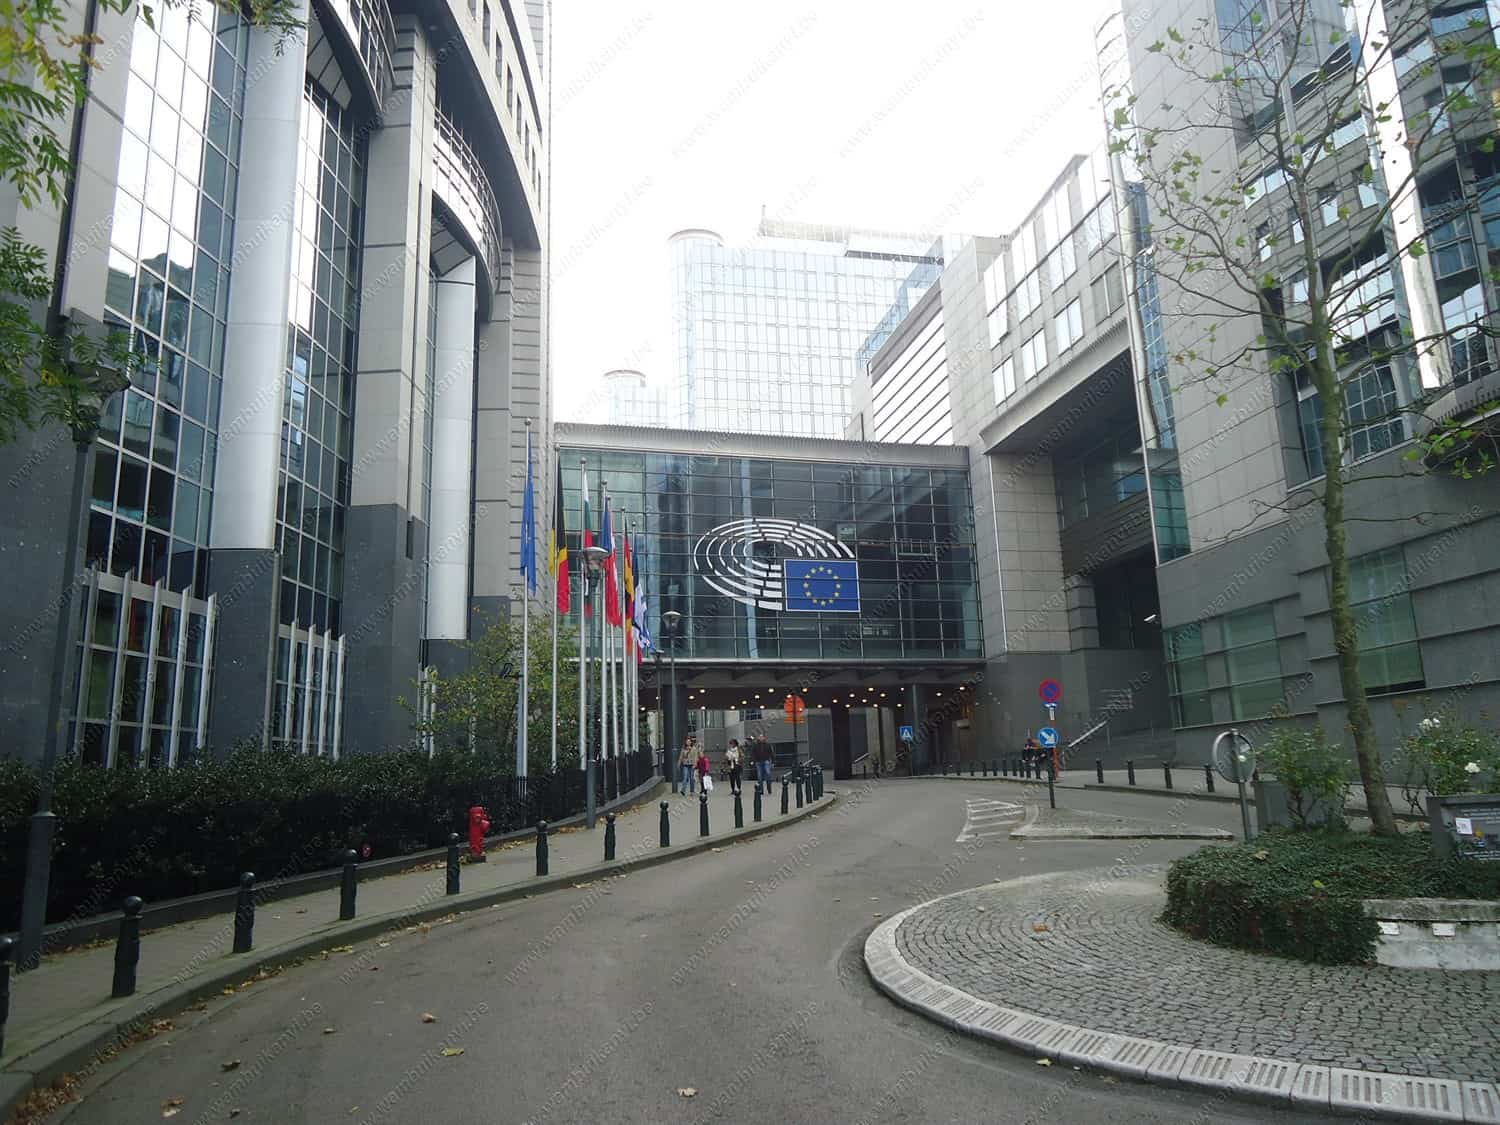 The European Union Parliament